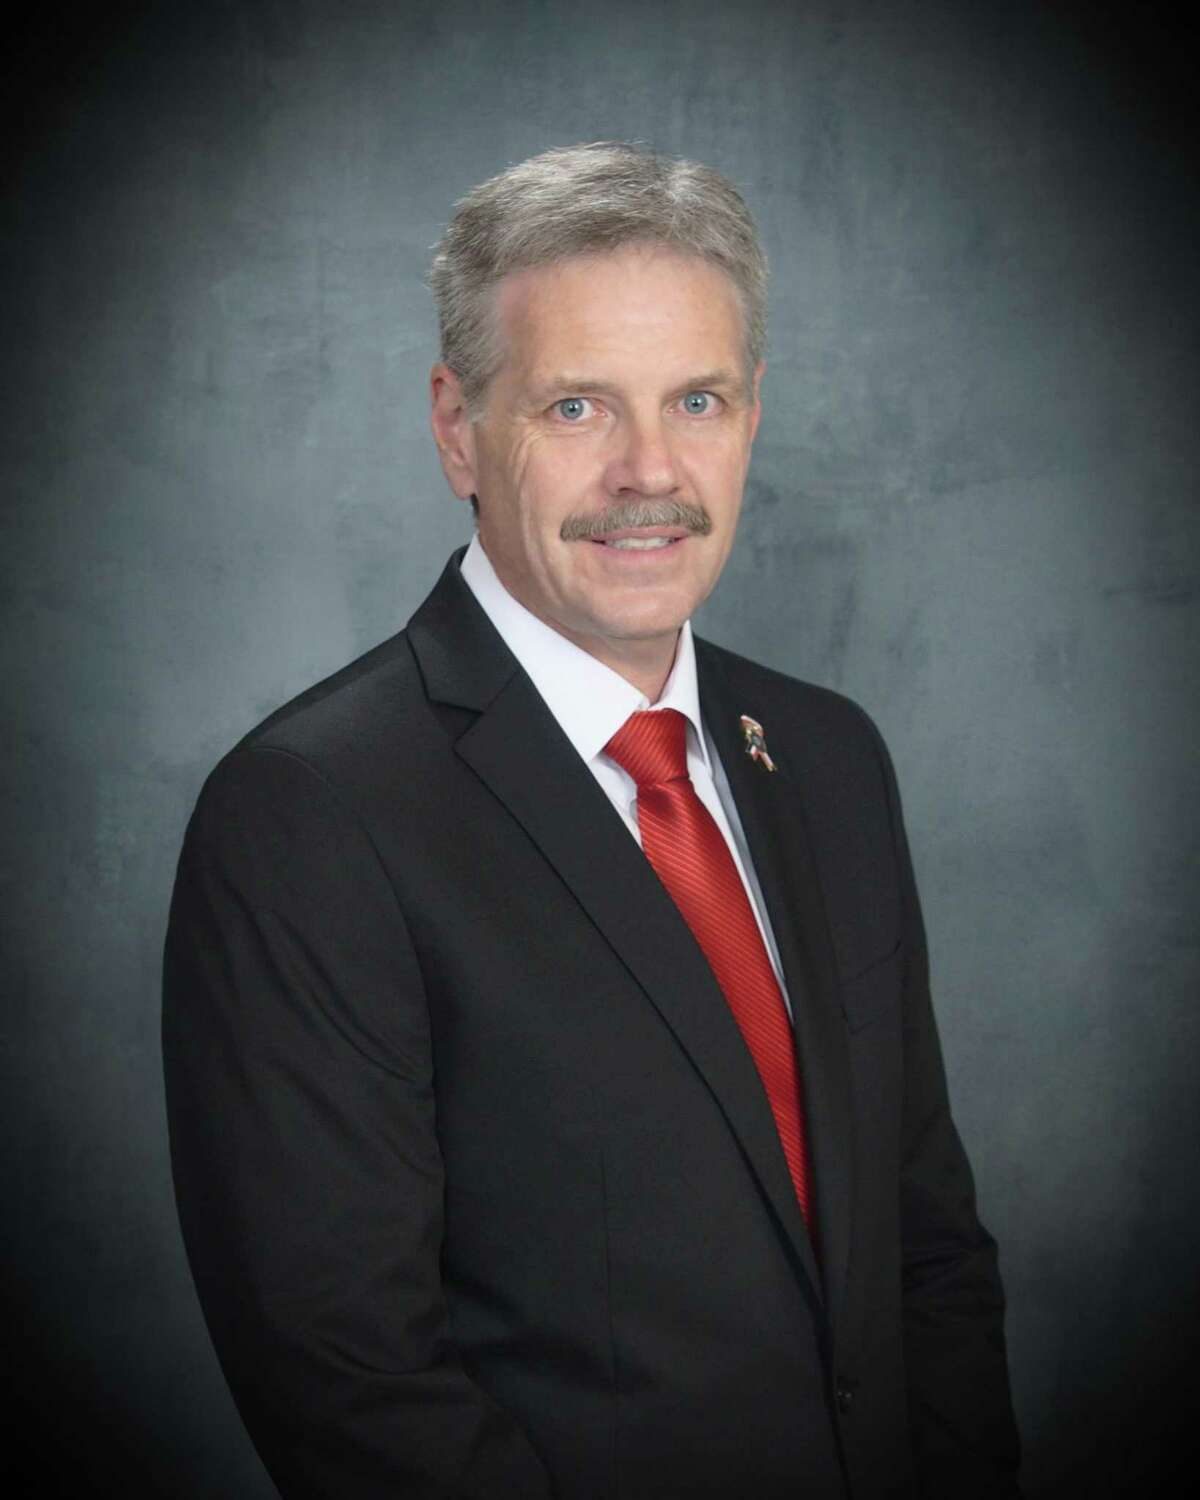 Jaime R. Taylor has been named the Sole Finalist in the Lamar University Presidential Search.